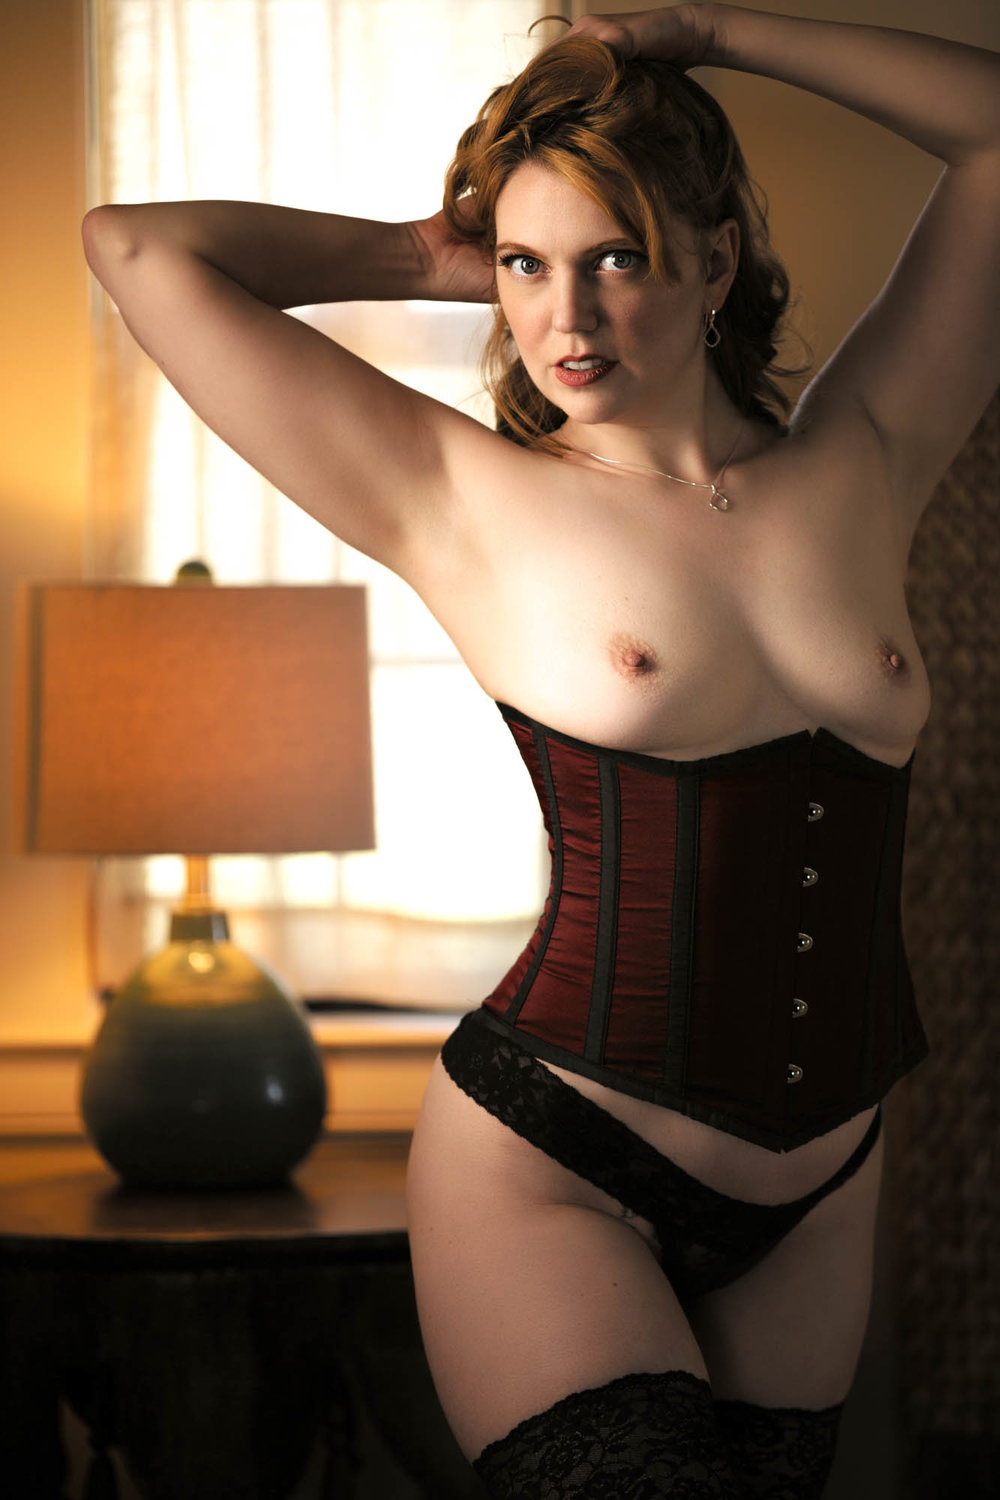 Mature wife large breasts wearing corset Boudoir Lingerie Ideas